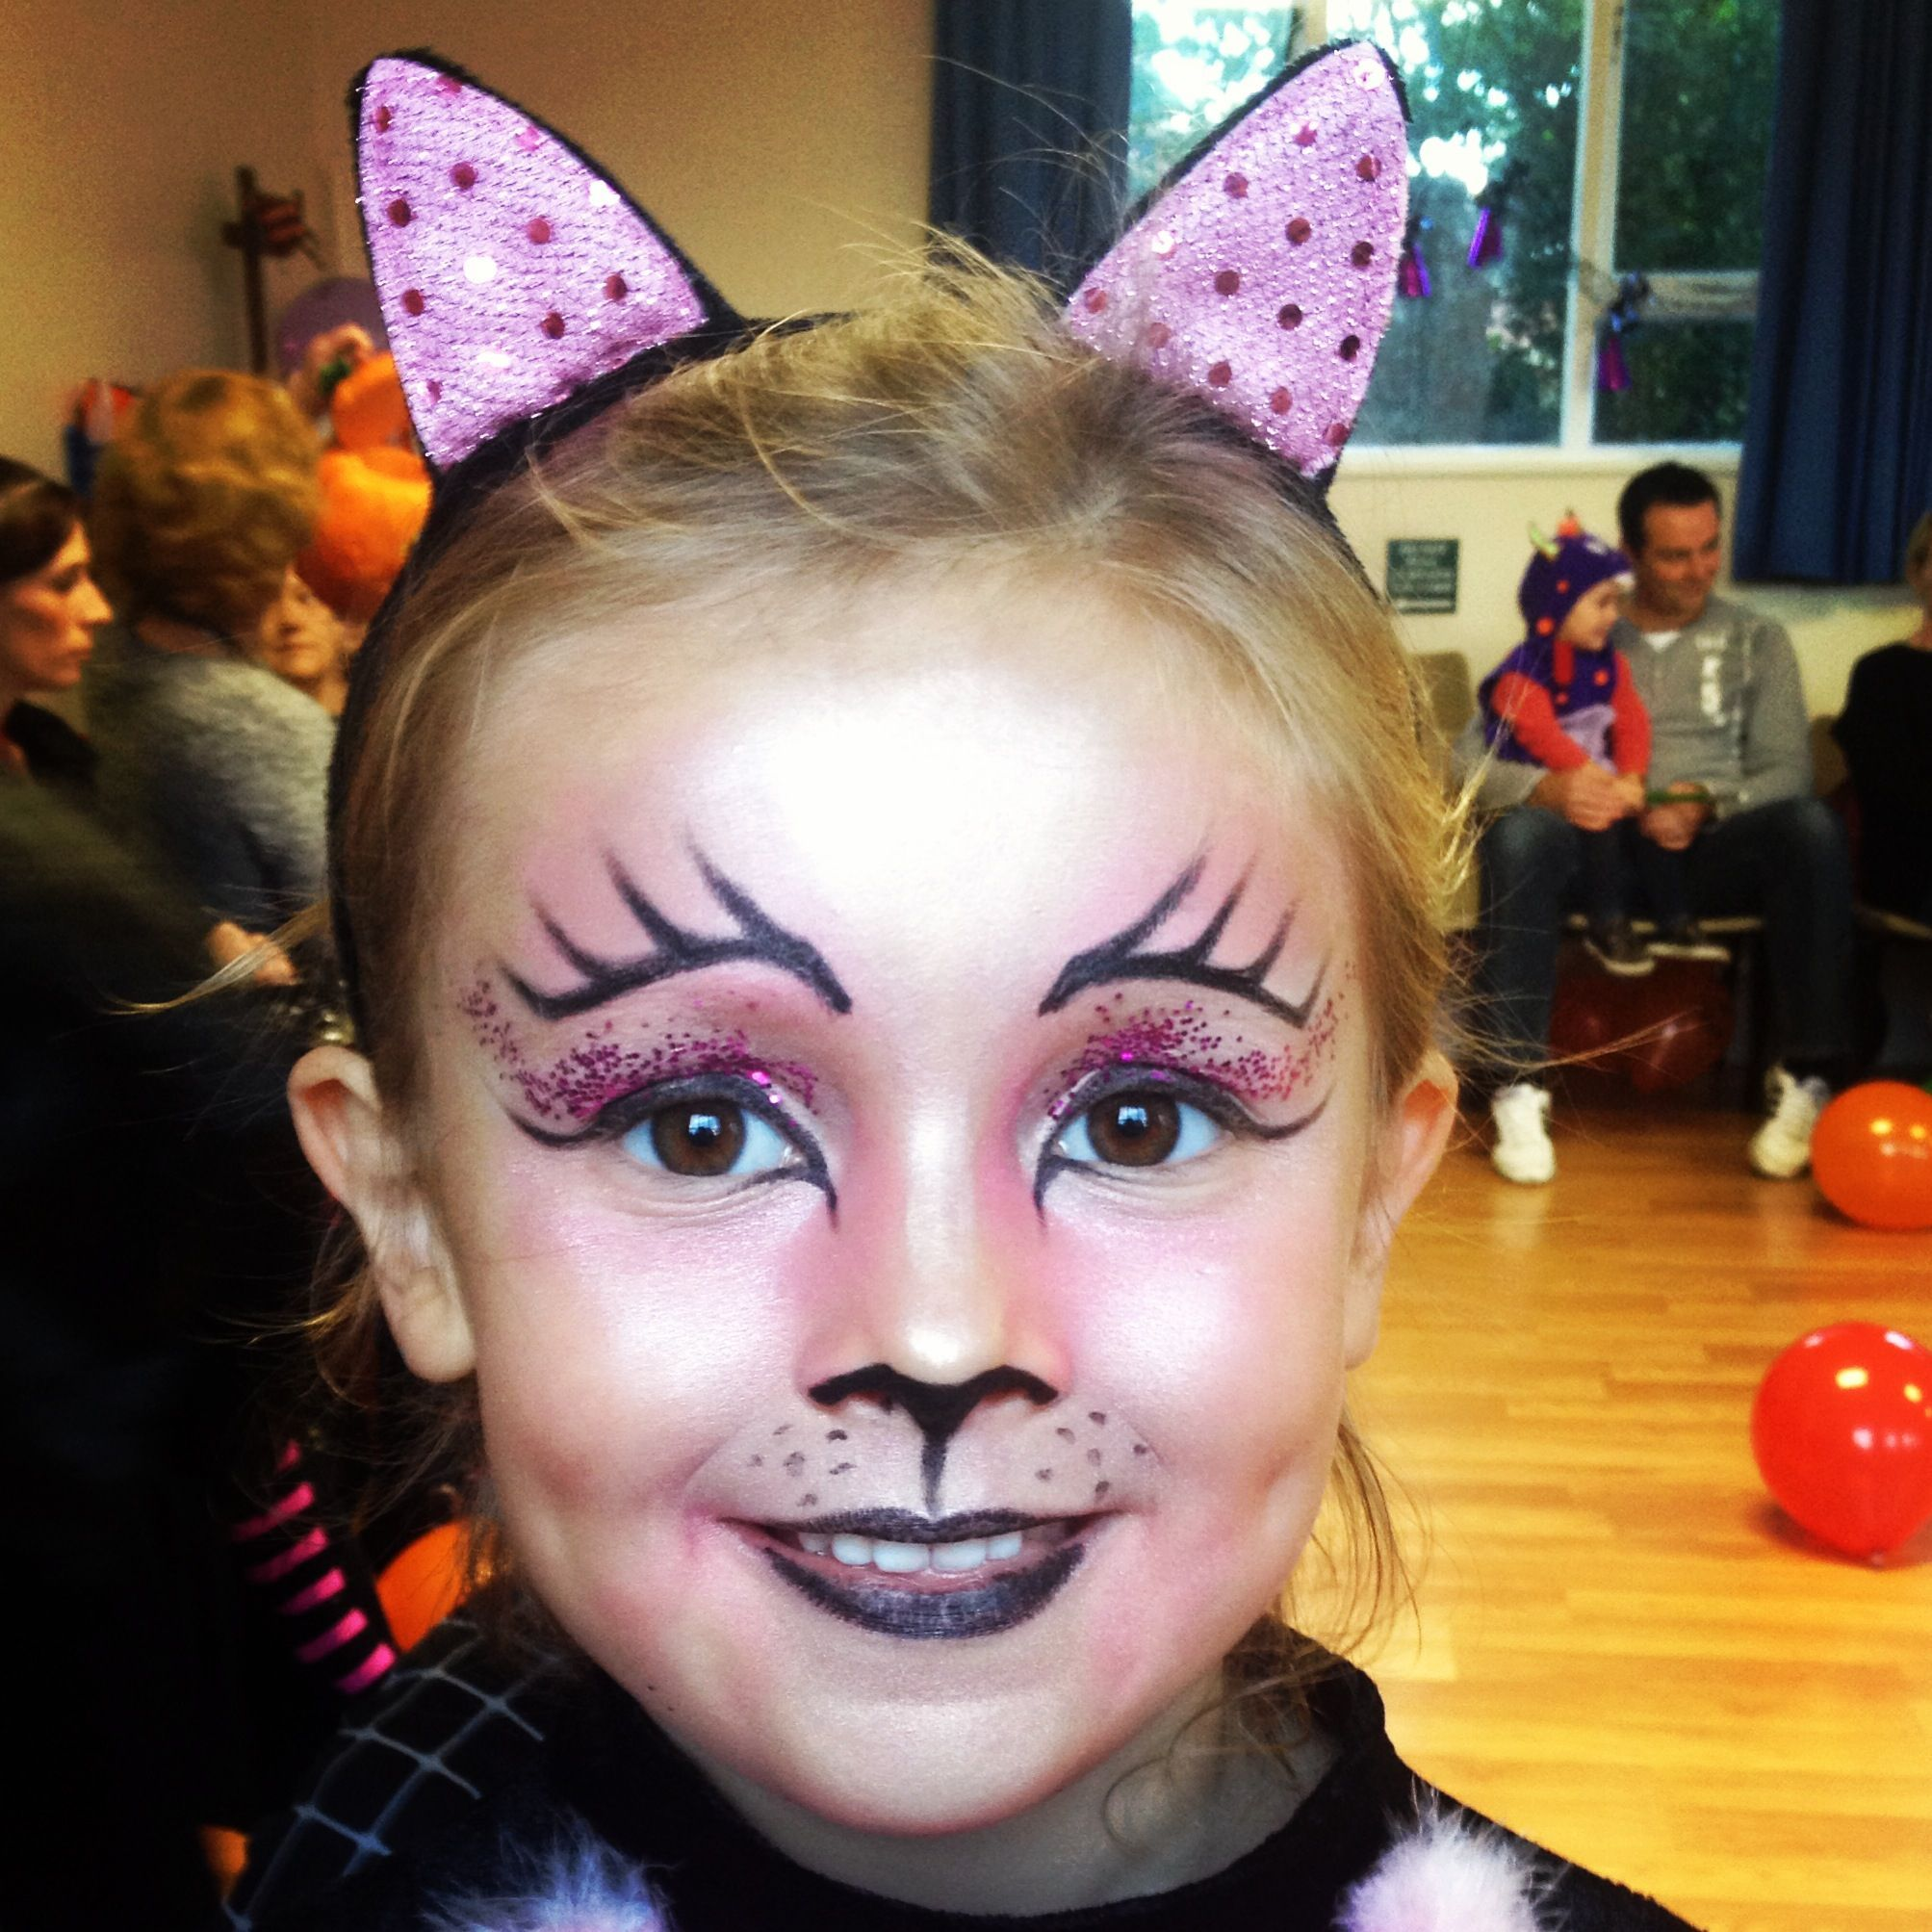 Girl S Cat Makeup Without Face Paint Paint Face Idea In Kitty Face Paint Cat Makeup For Kids Halloween Makeup For Kids